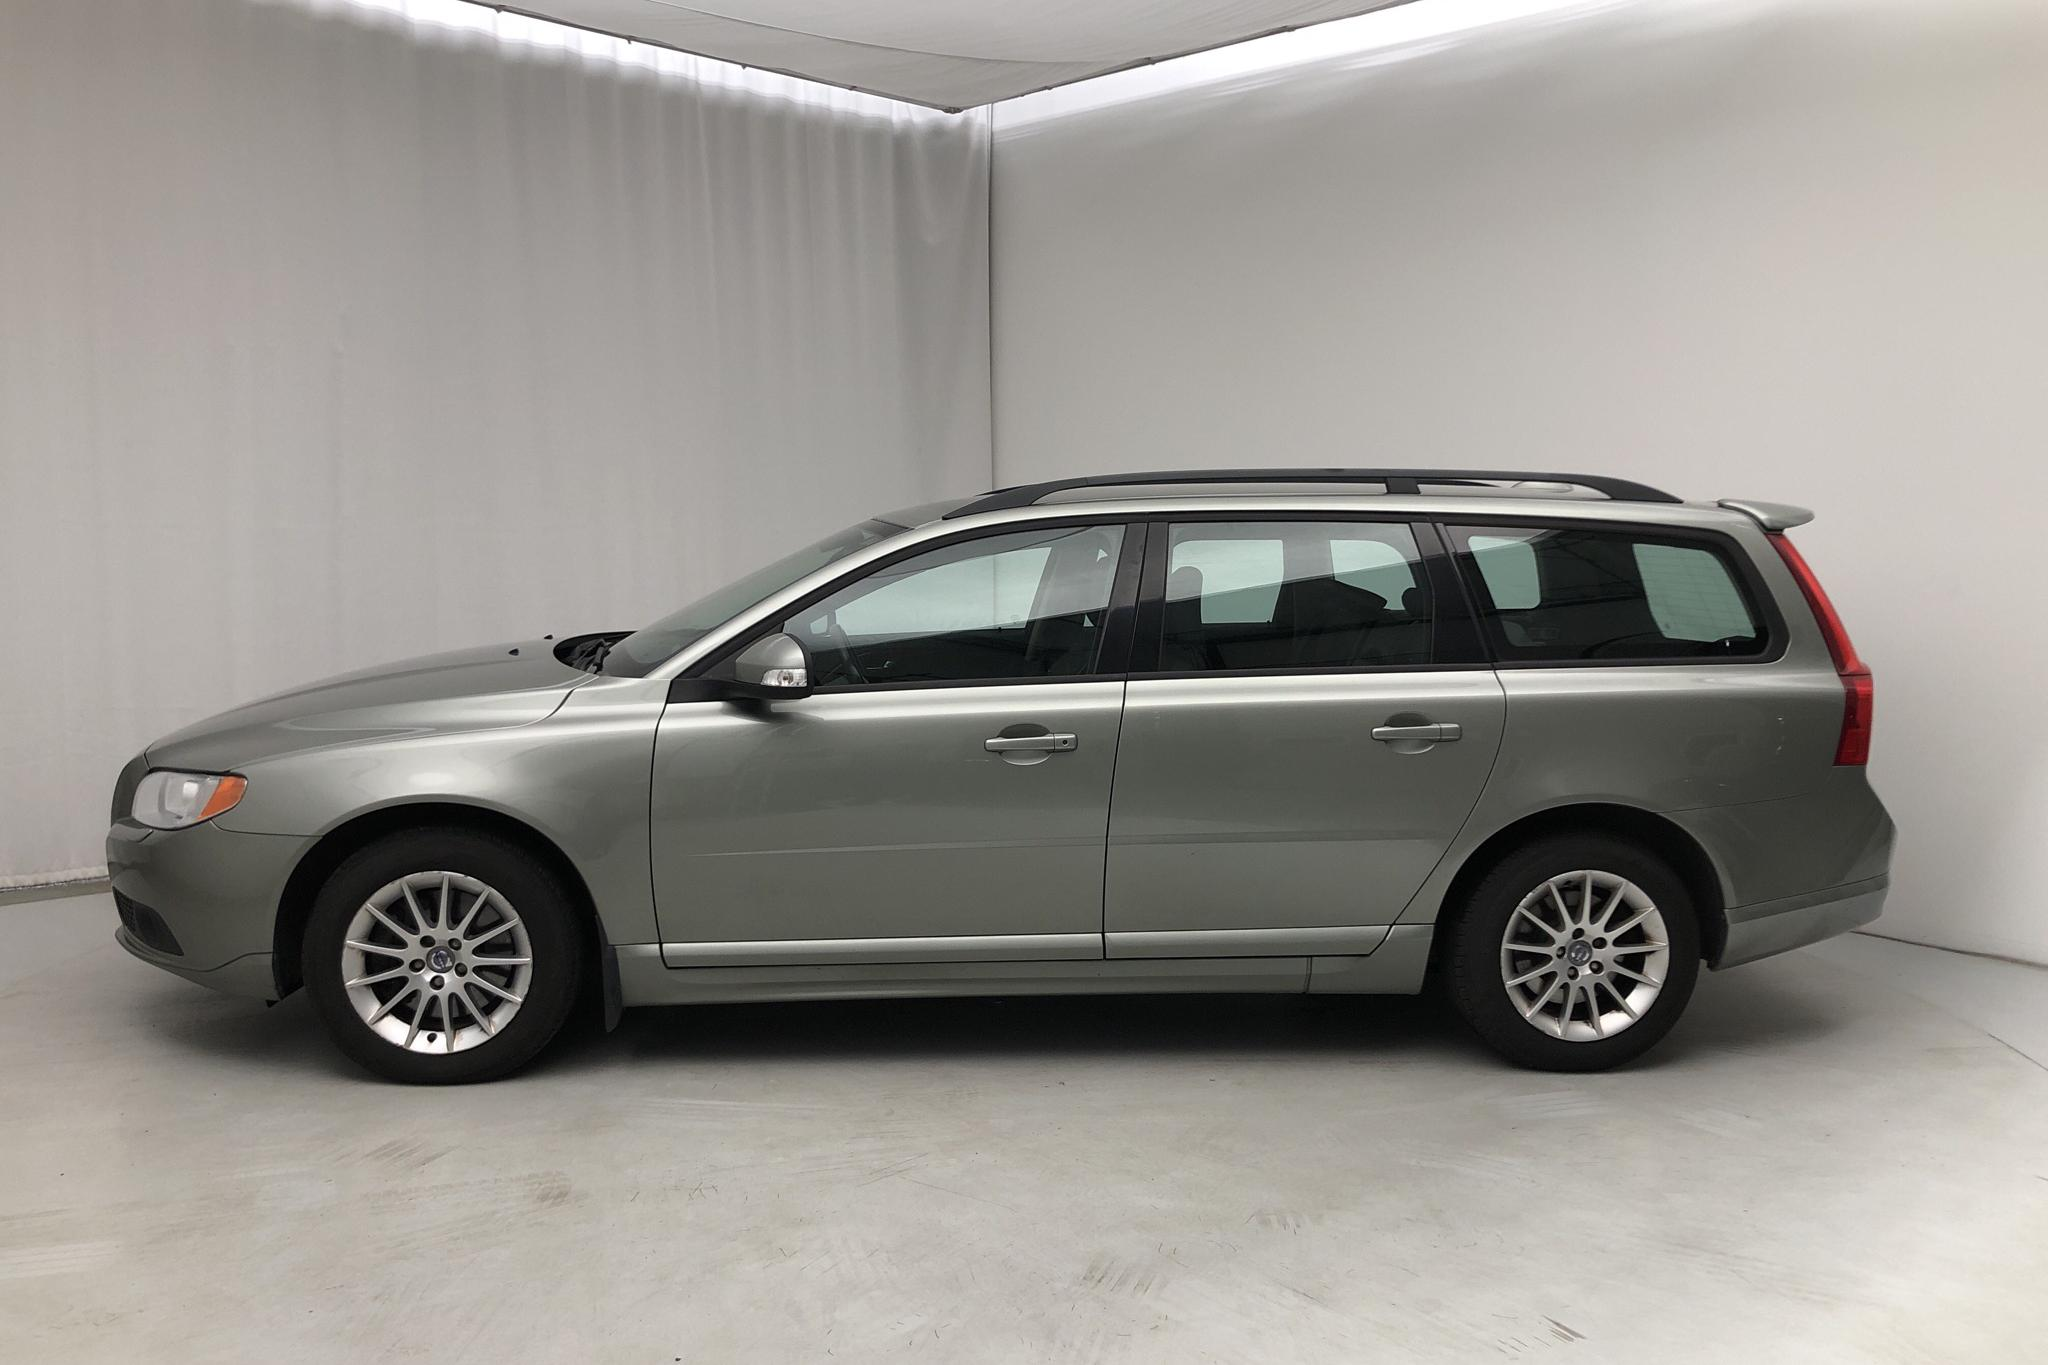 Volvo V70 II 2.4D (163hk) - 217 500 km - Automatic - Light Green - 2008